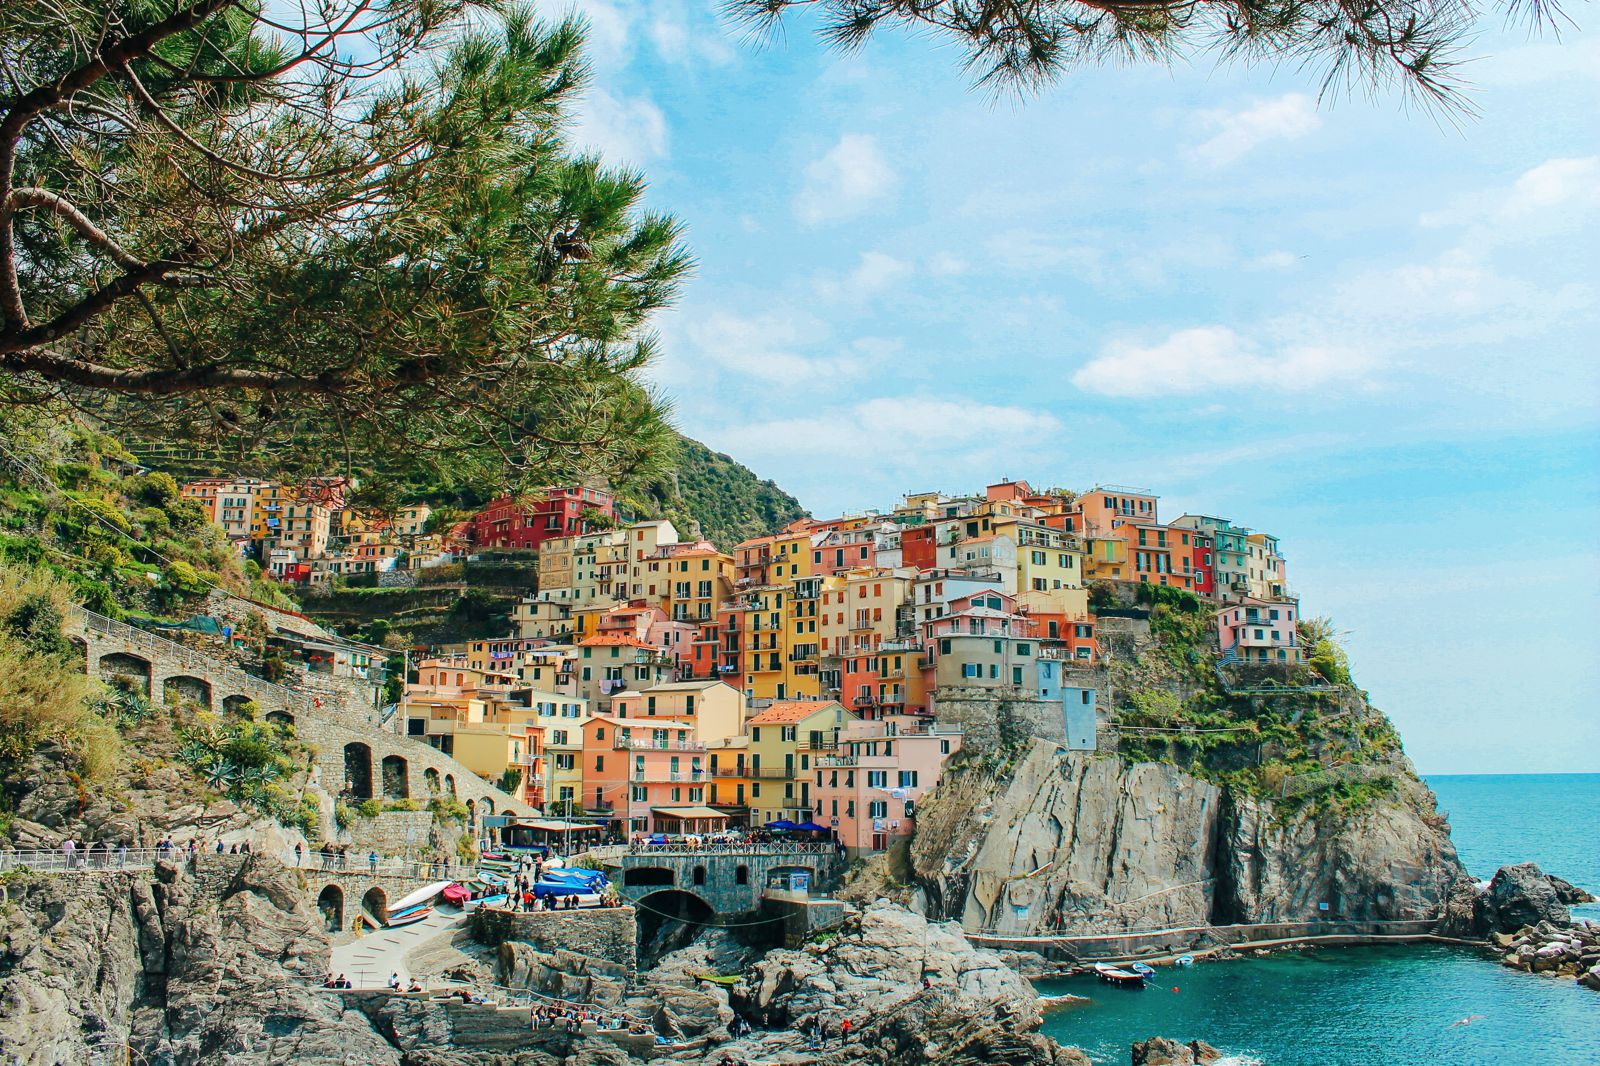 Manarola in Cinque Terre, Italy - The Photo Diary! [2 of 5] (7)